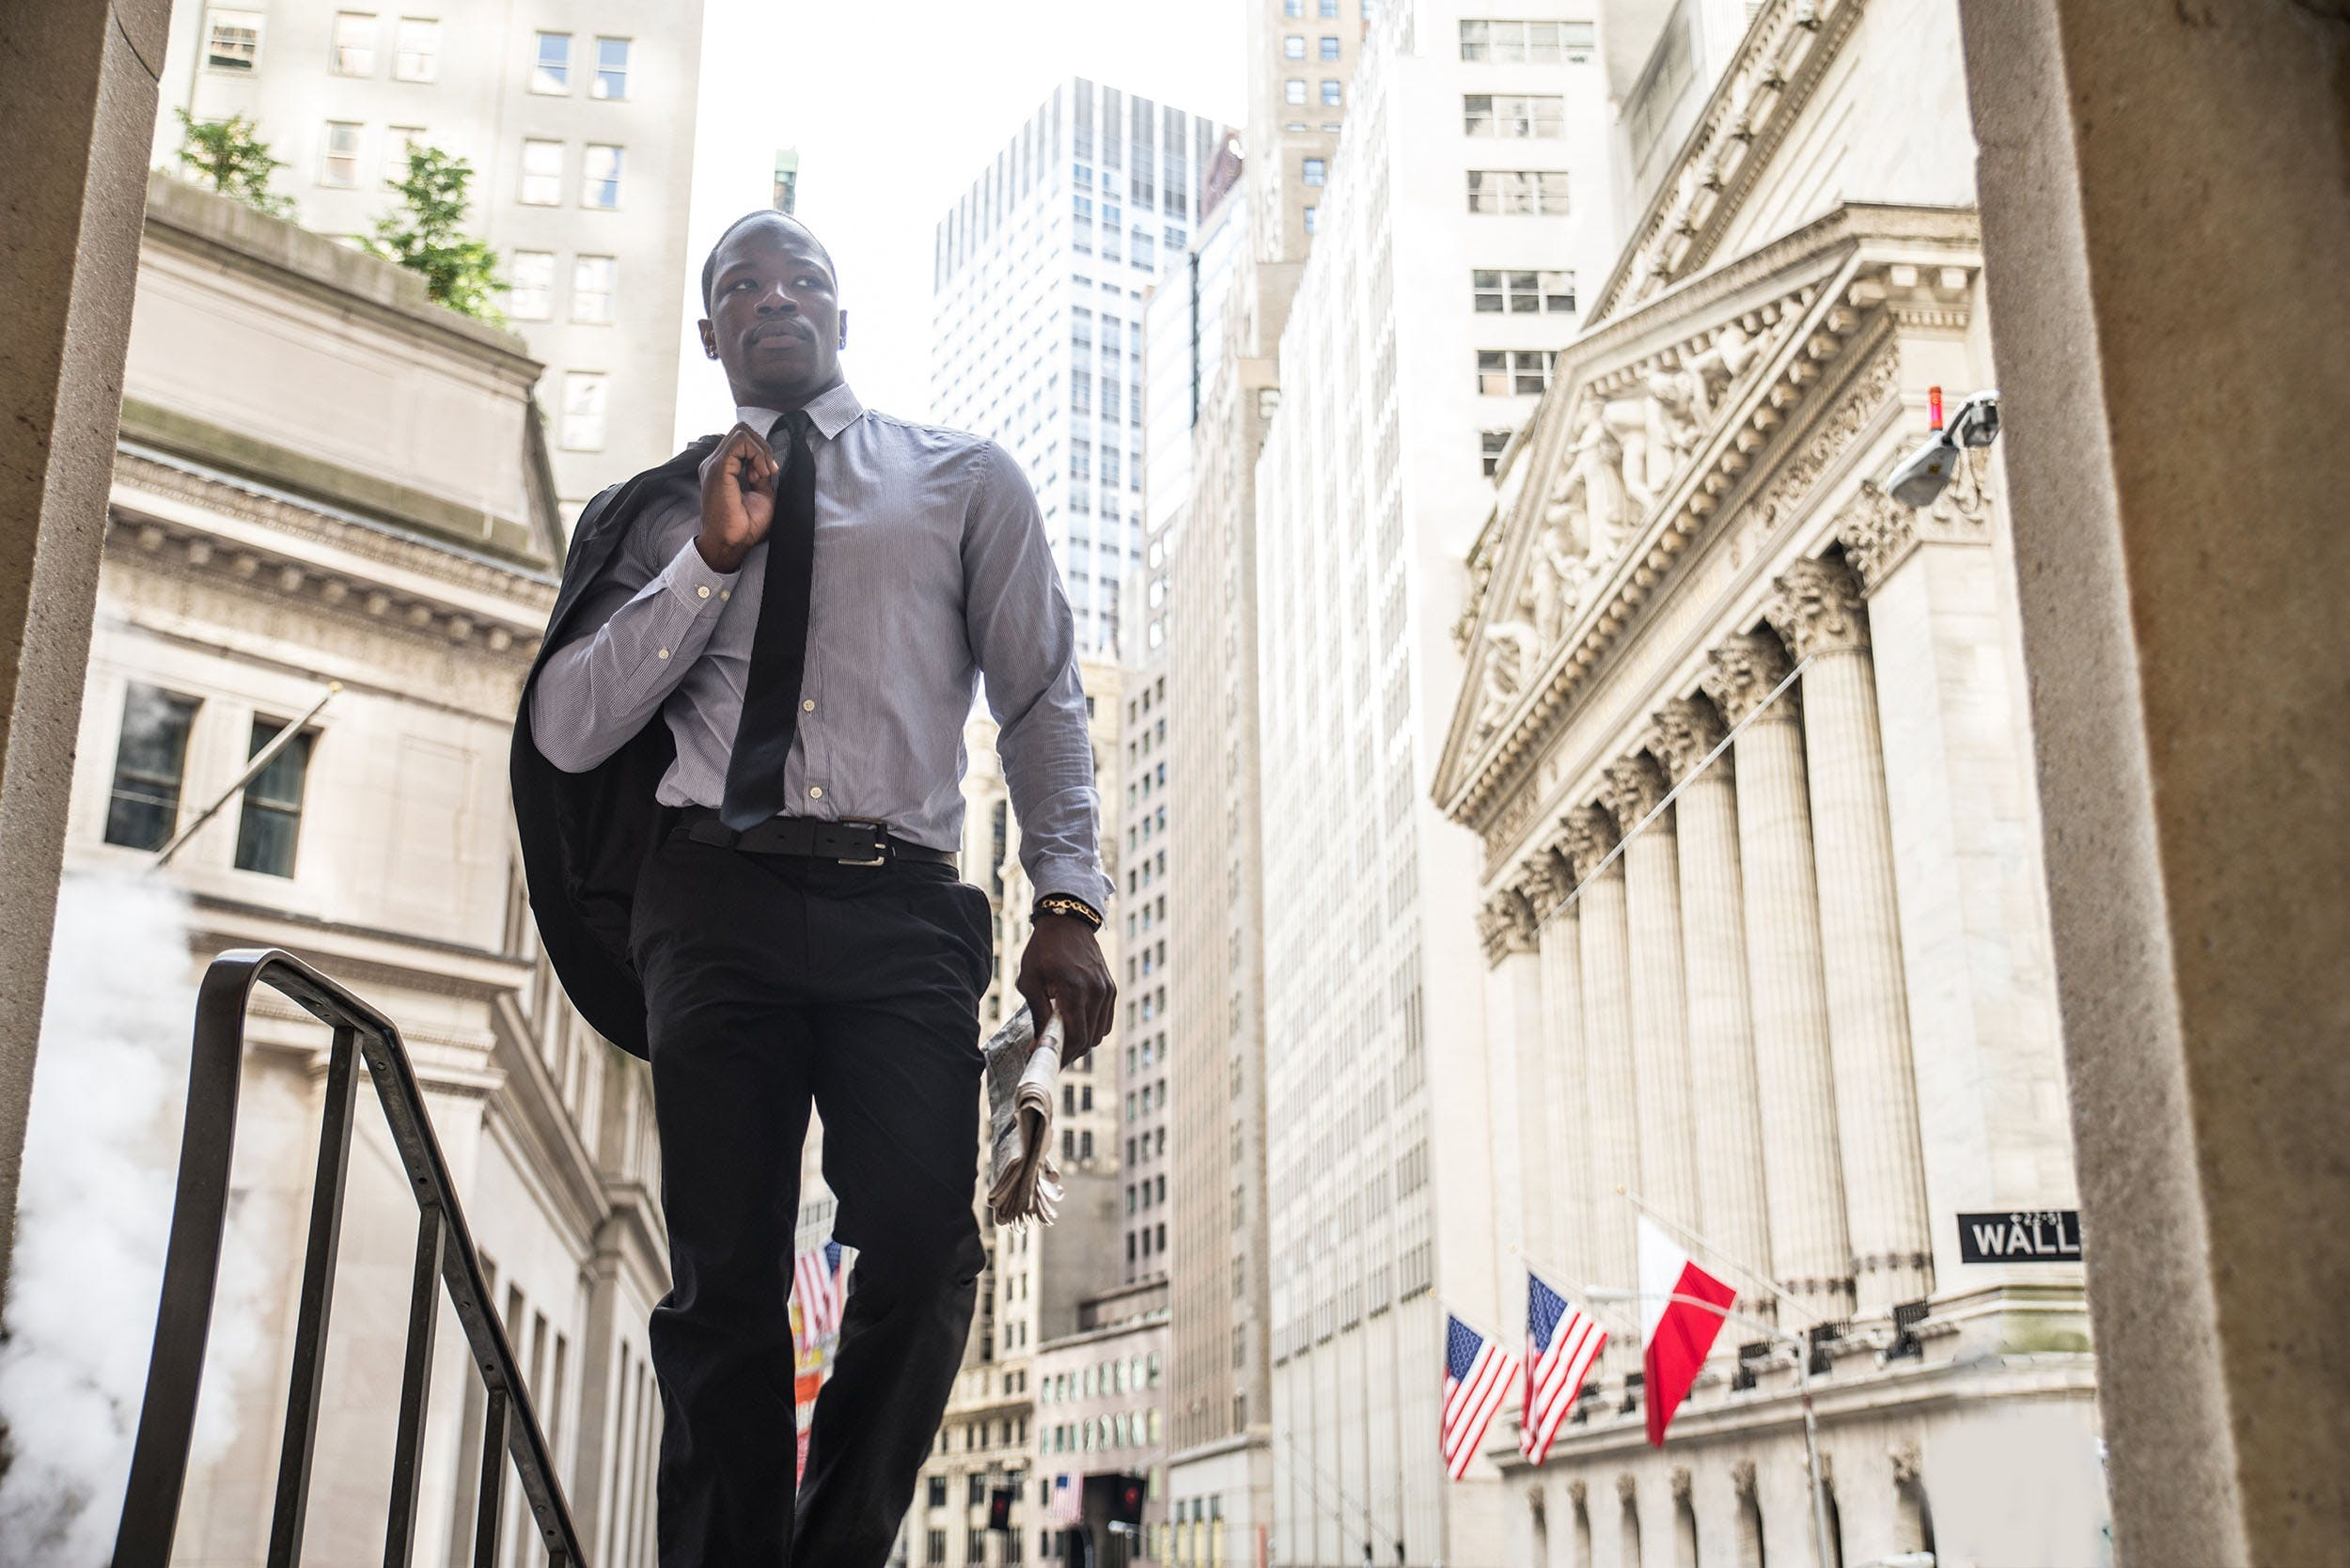 Businessman on Wall Street - Lower Manhattan - New York City